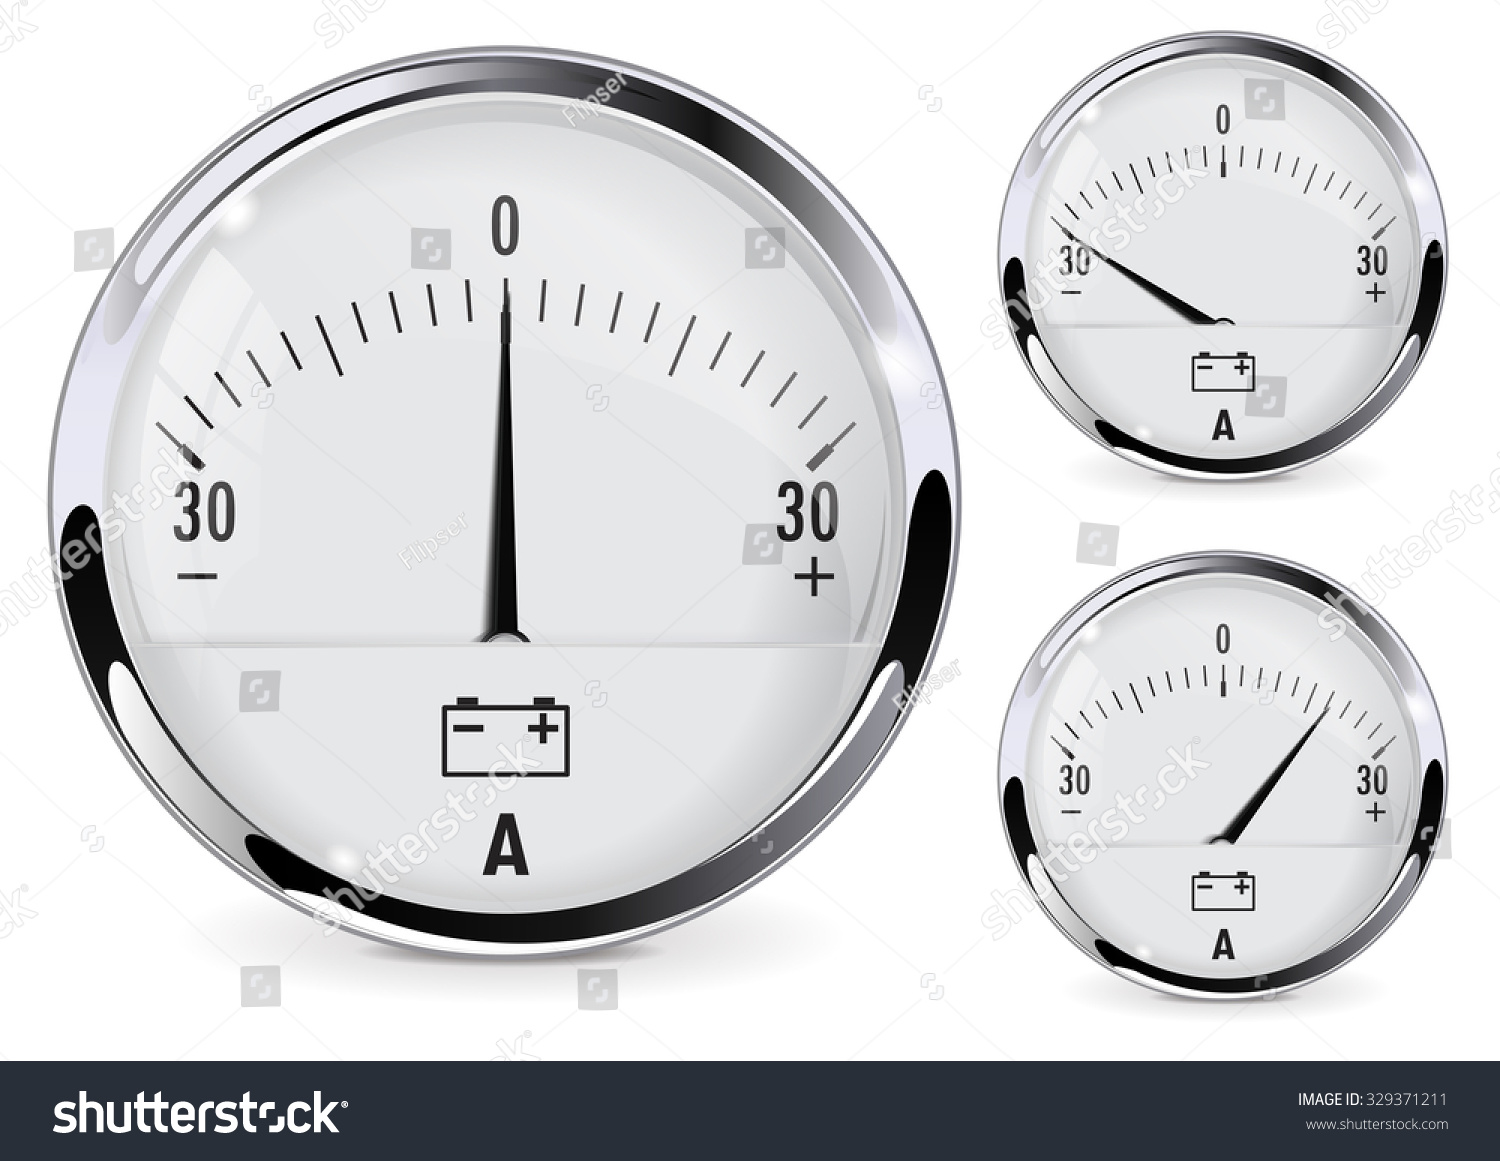 Ammeter Clip Art : Ammeter for car dashboard illustration isolated on white